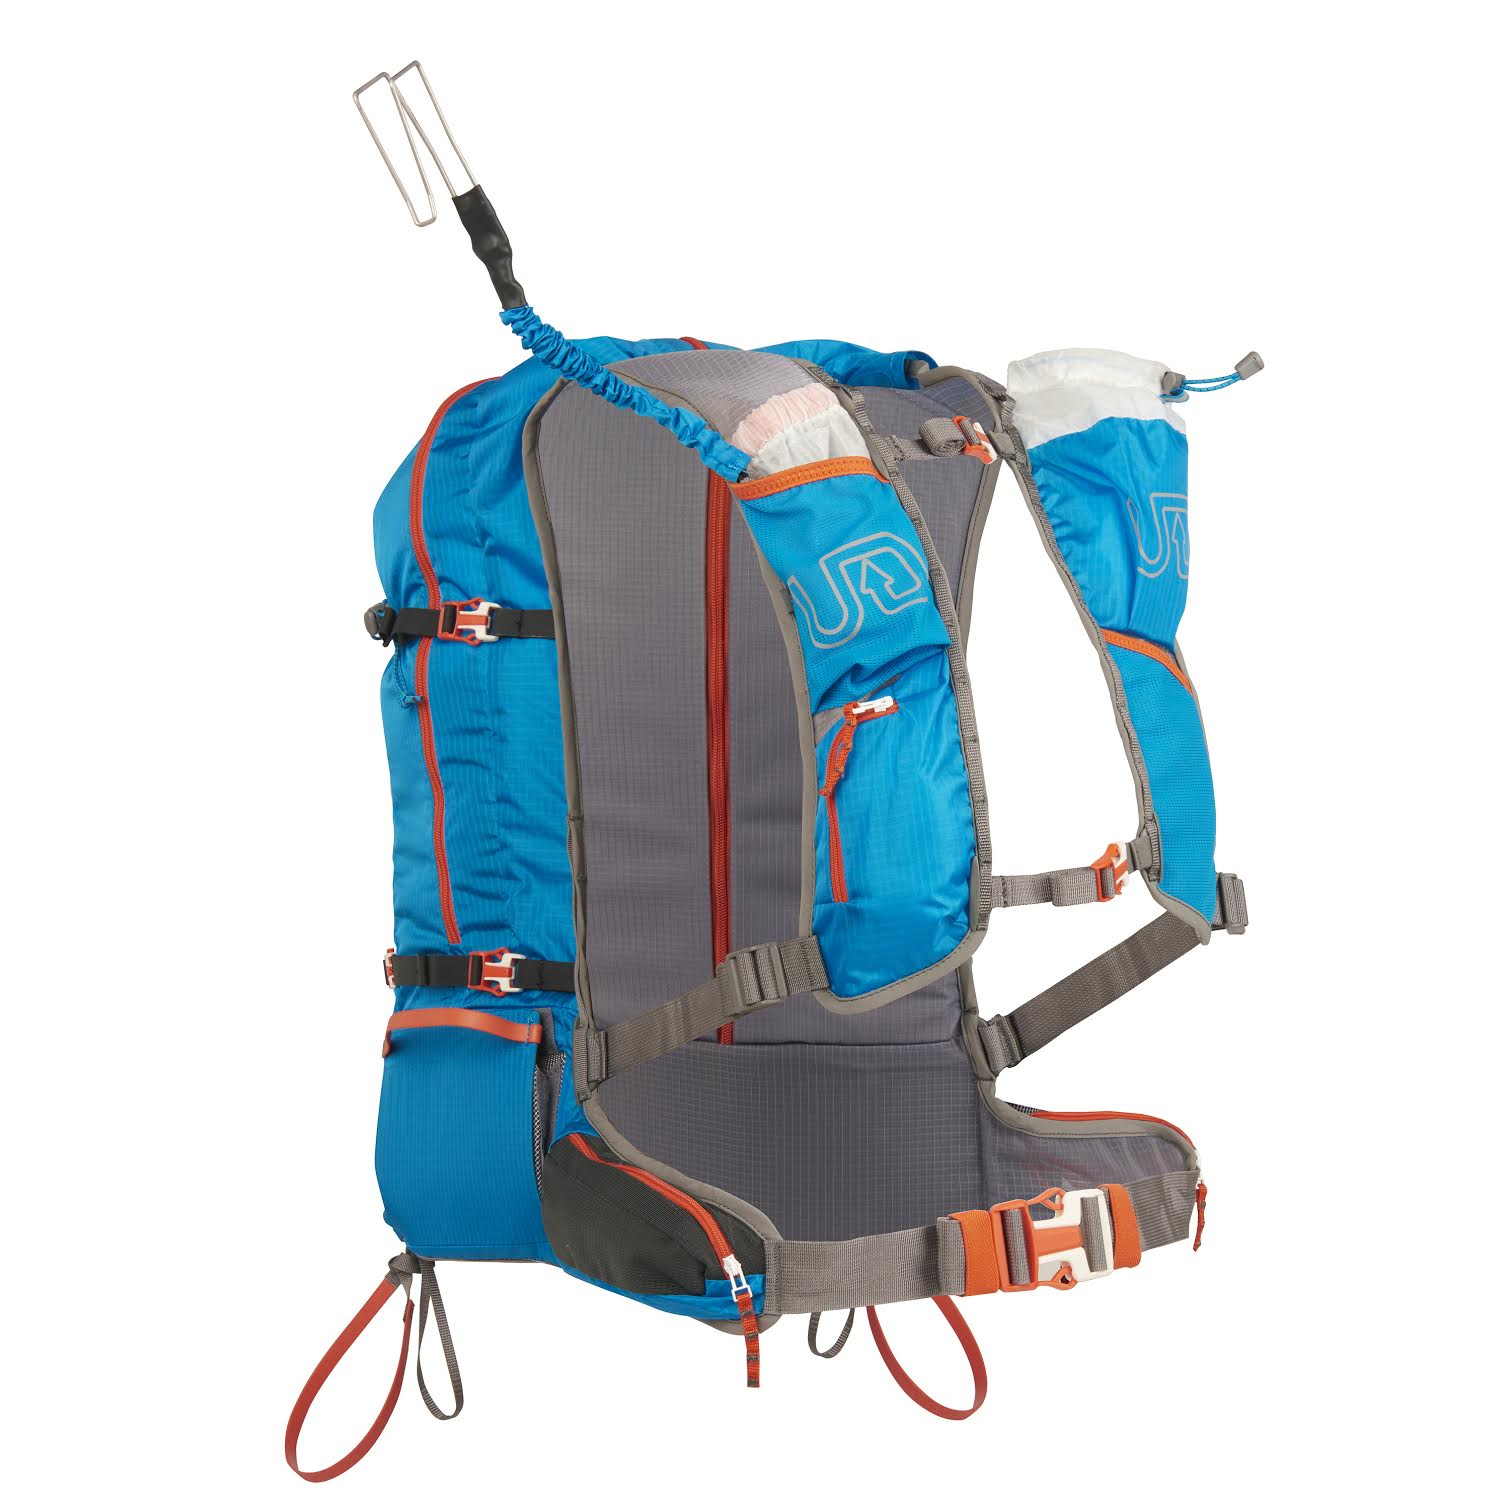 SkiMo 28 backpack